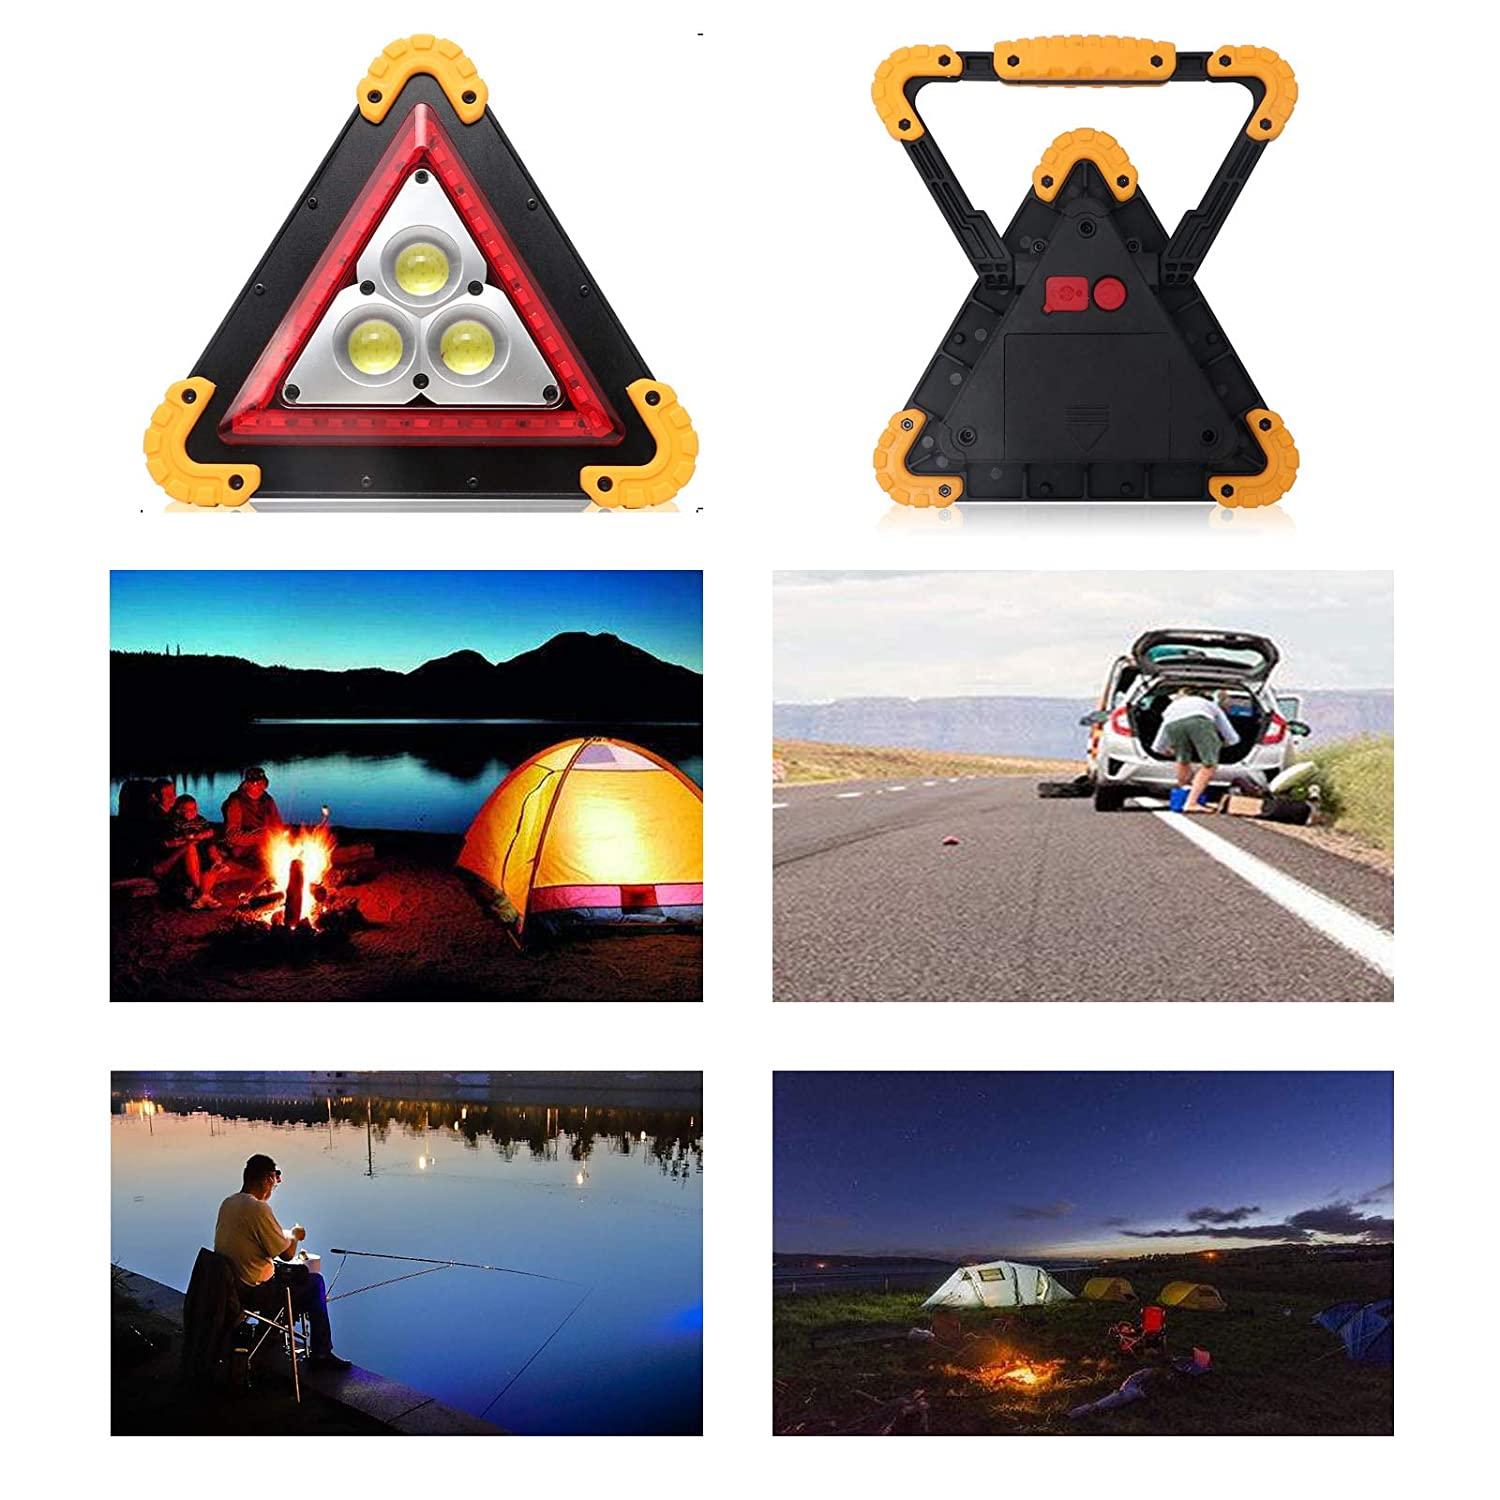 Huini Car Breakdown Emergency Light Flashing Warning Triangle Light 4 Modes LED Bright Light USB Rechargeable Power Bank Function Waterproof for Emergency,Car repairing,Camping,Hiking,Fishing